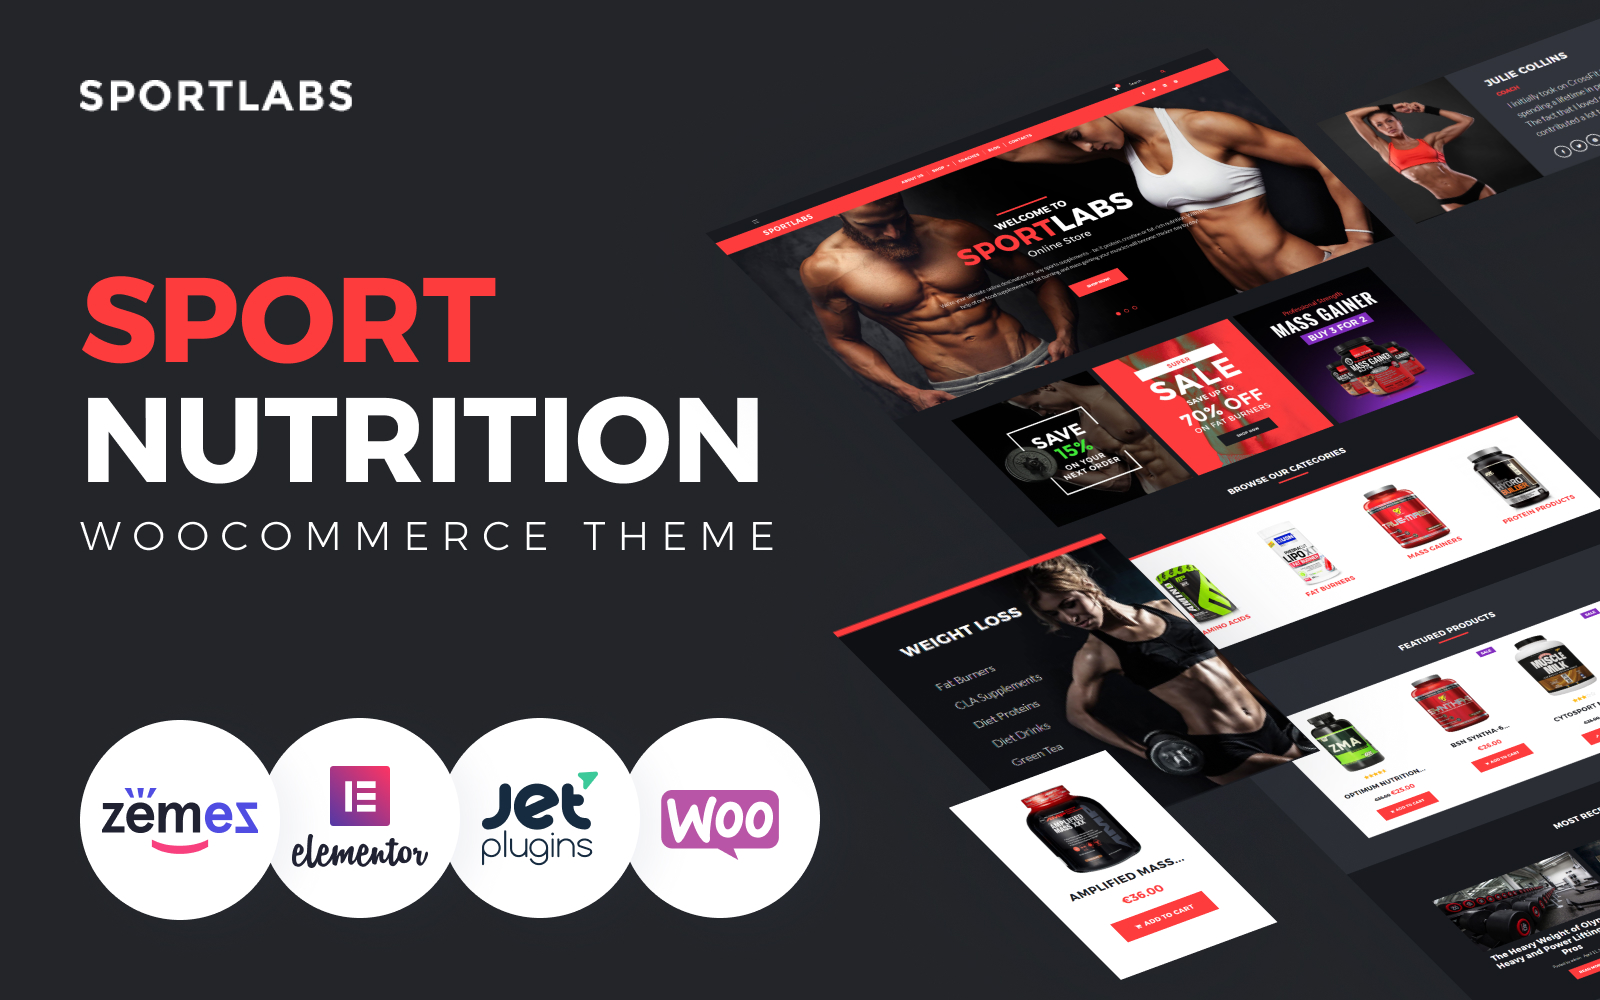 SportLabs - Sport Nutrition WooCommerce Theme